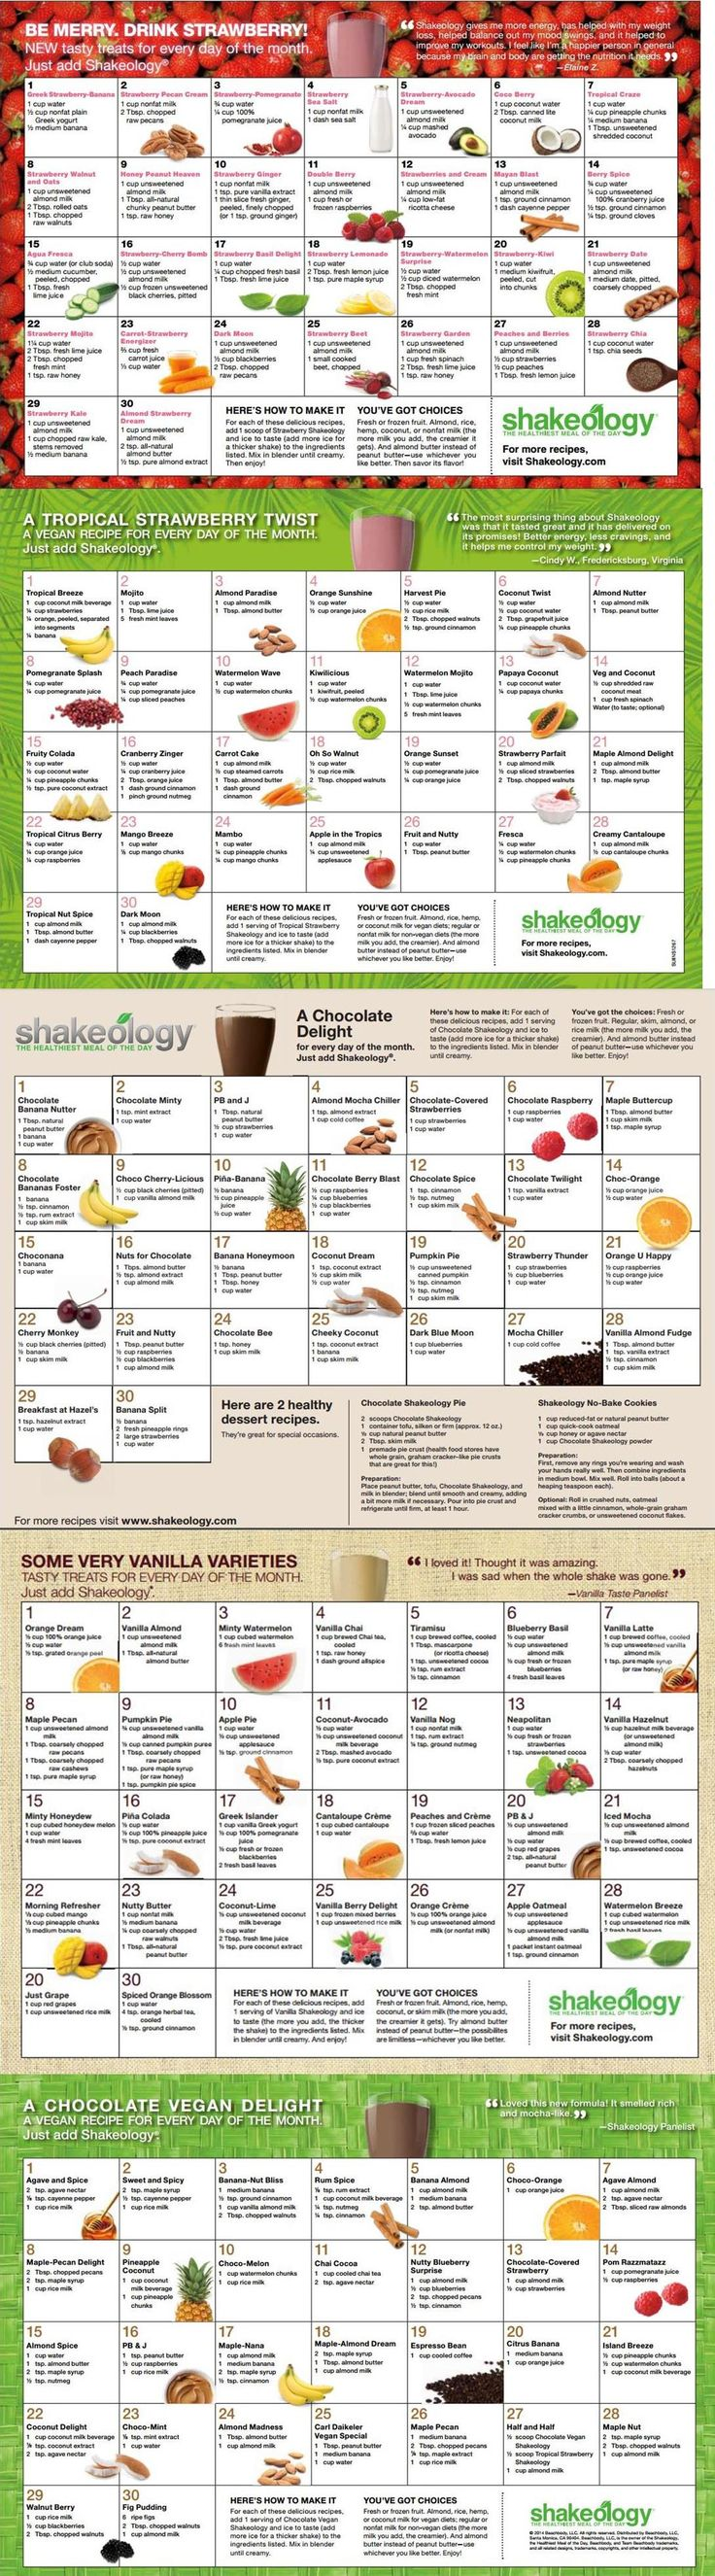 Shakeology provides you 70 plus ultra high quality ingredients that have a wide range of essential nutrients, and even the fruits and vegetables you should be eating more of every day. With Shakeology you have the opportunity to have the health benefits of the important foods from all around the world, foods that the latest scientific research shows to be highly advantageous to your overall well-being.